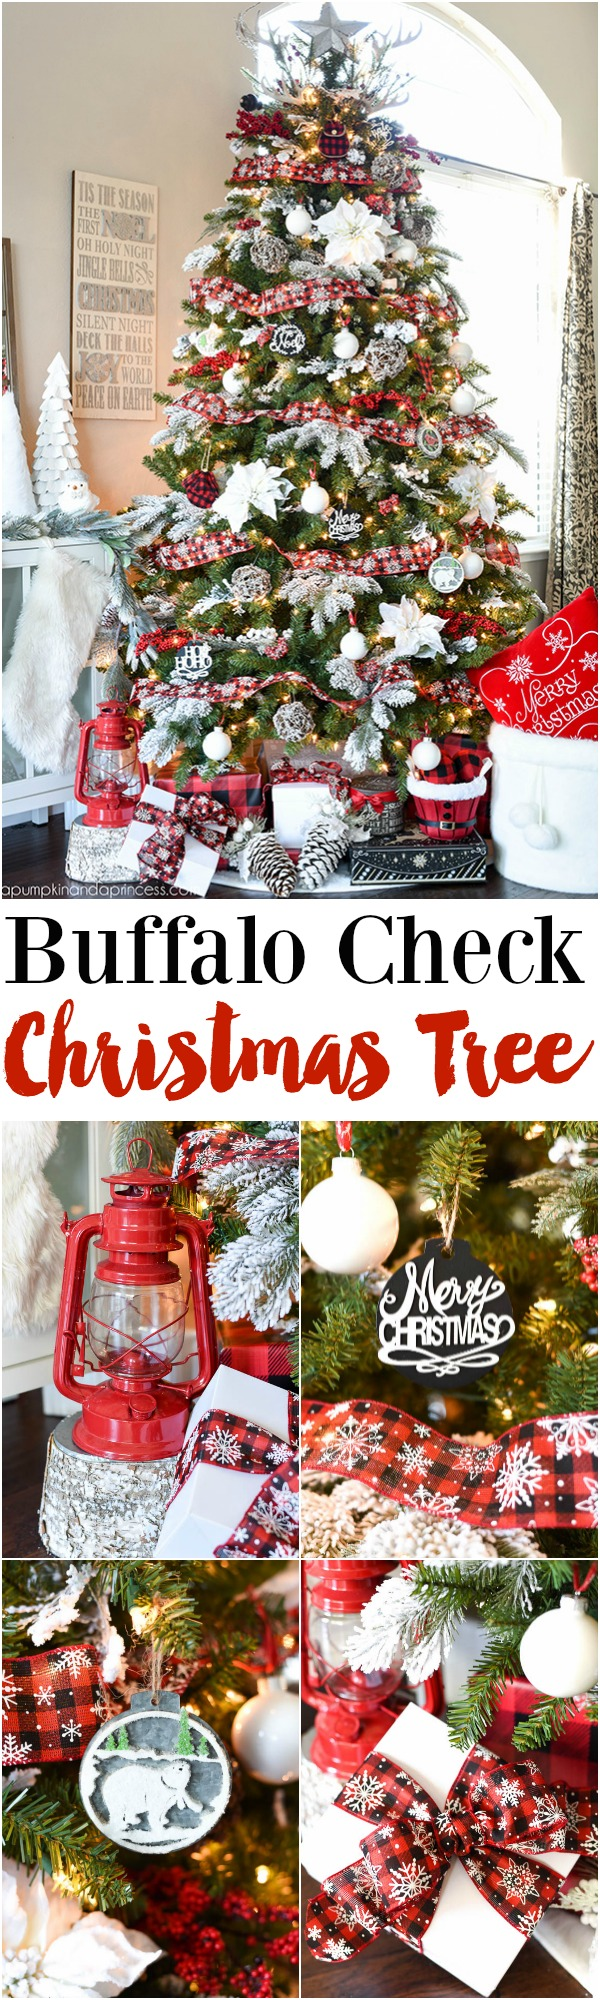 Buffalo Check Christmas Tree - Michaels Dream Tree